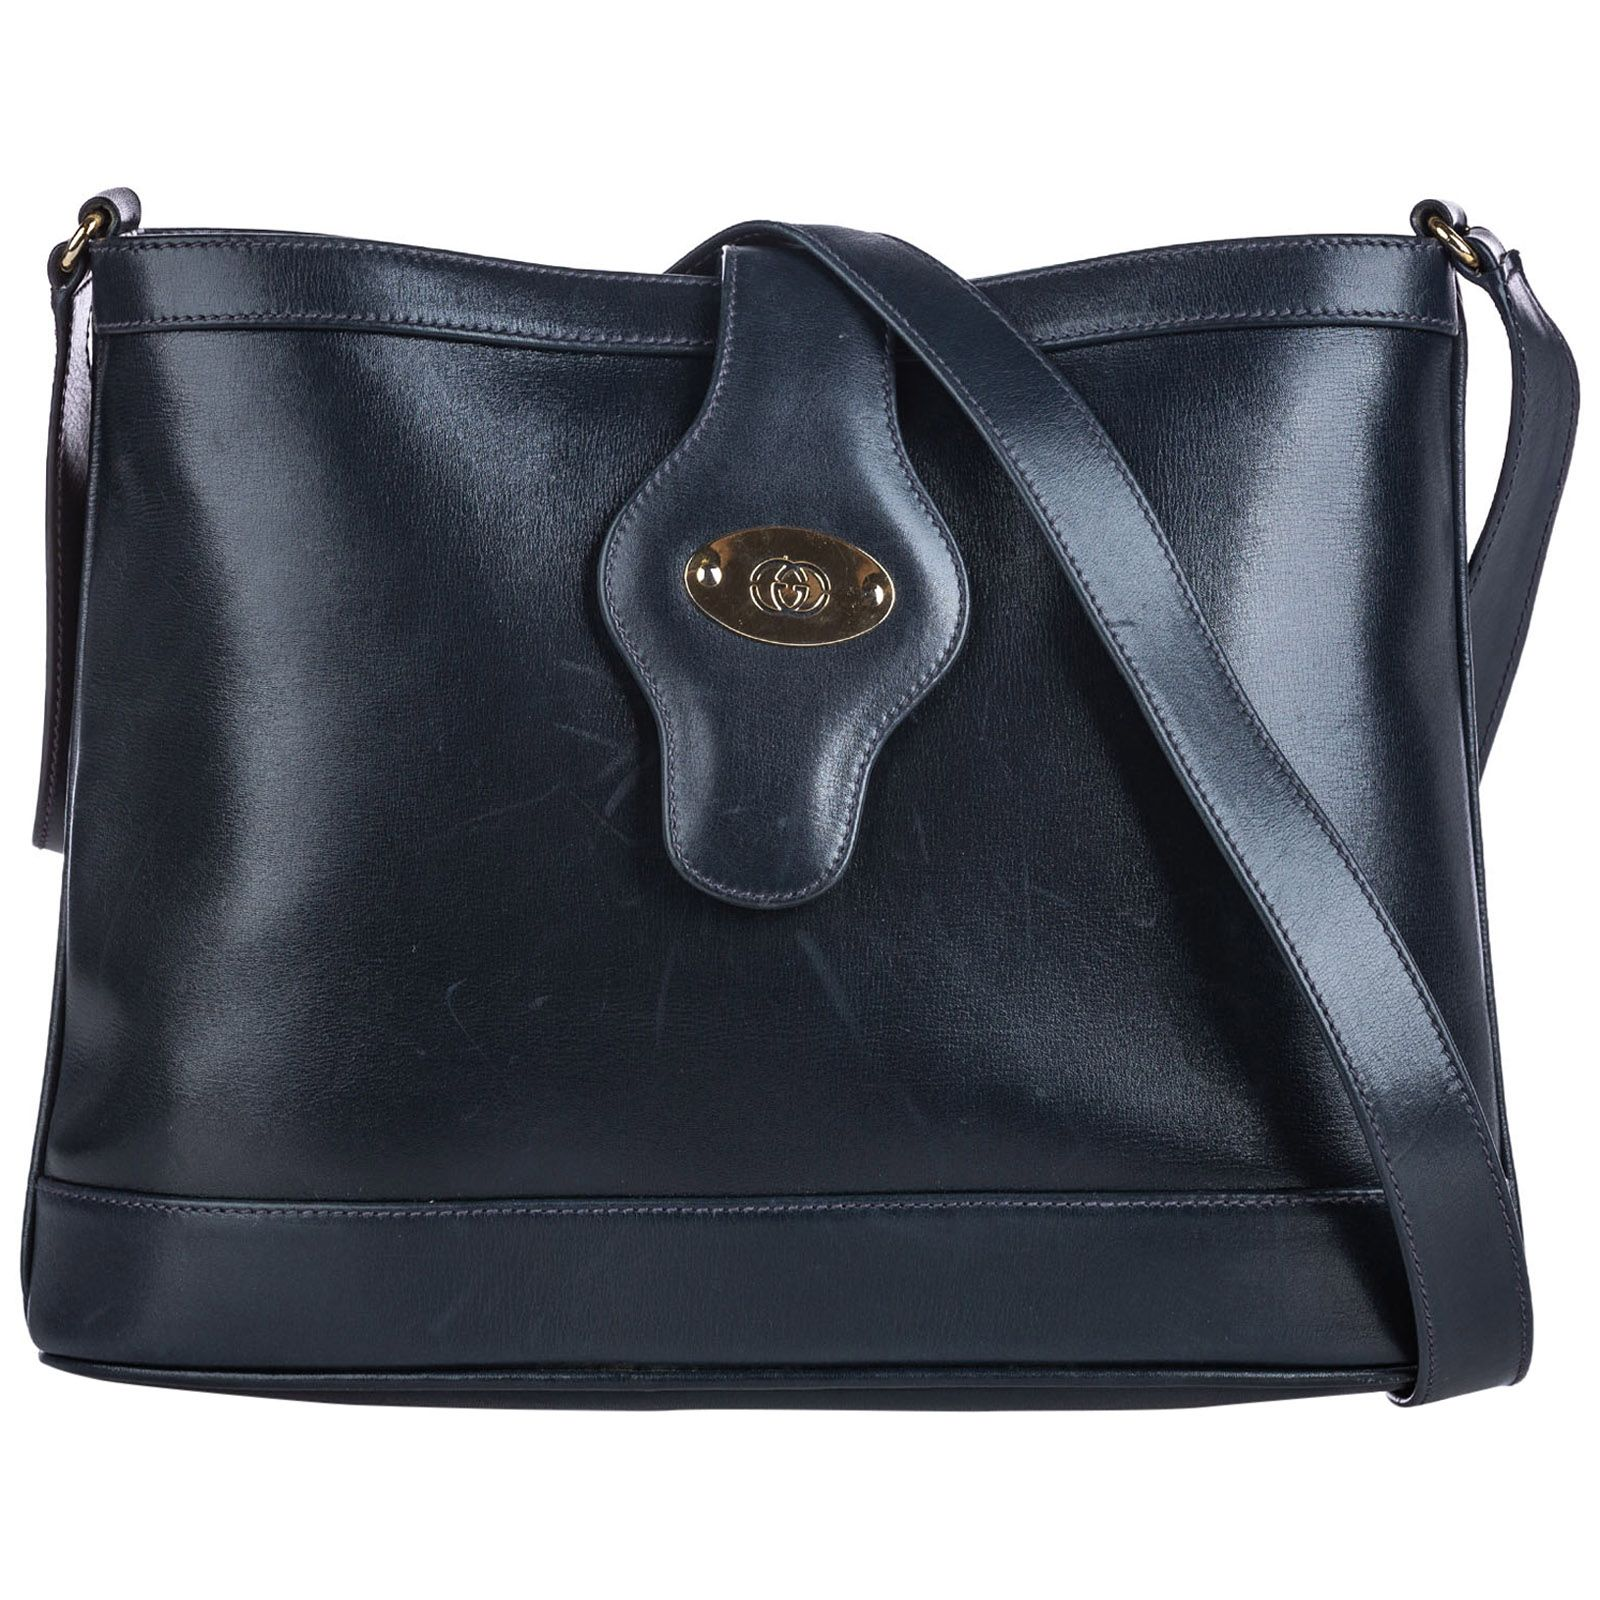 GUCCI WOMENS LEATHER SHOULDER BAG bags bags